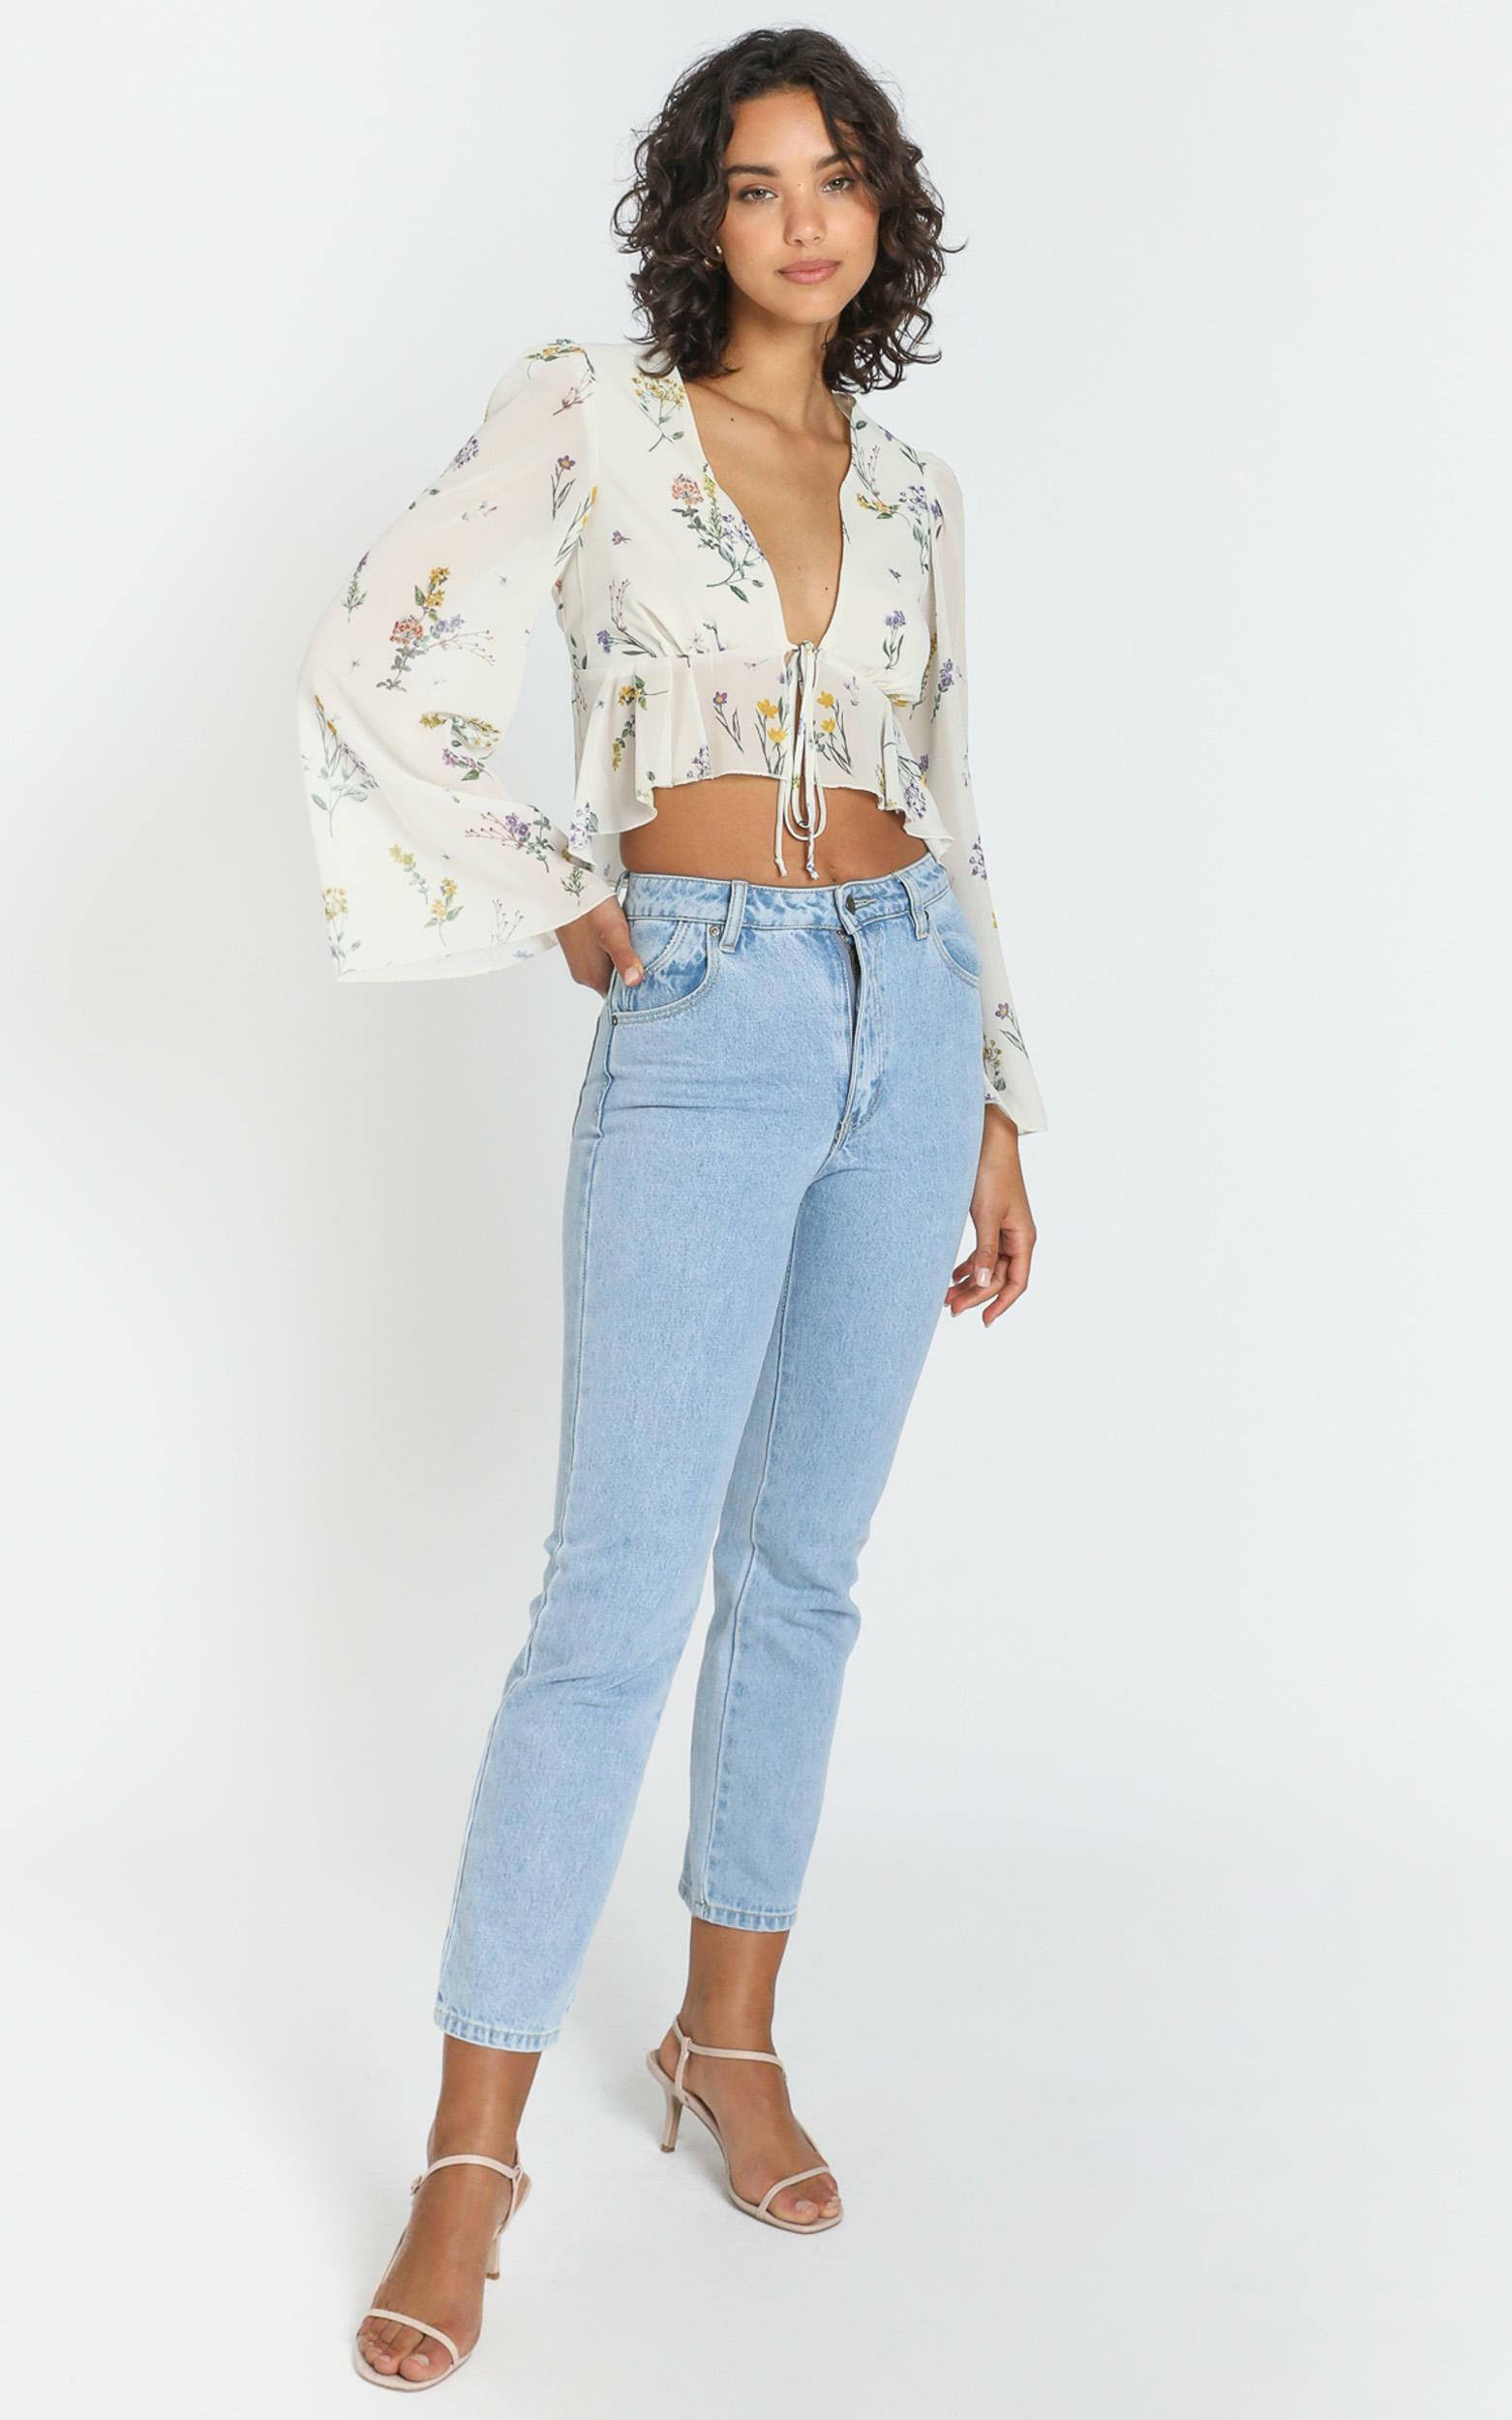 Dance It Out Top in botanical floral - 4 (XXS), WHT2, hi-res image number null